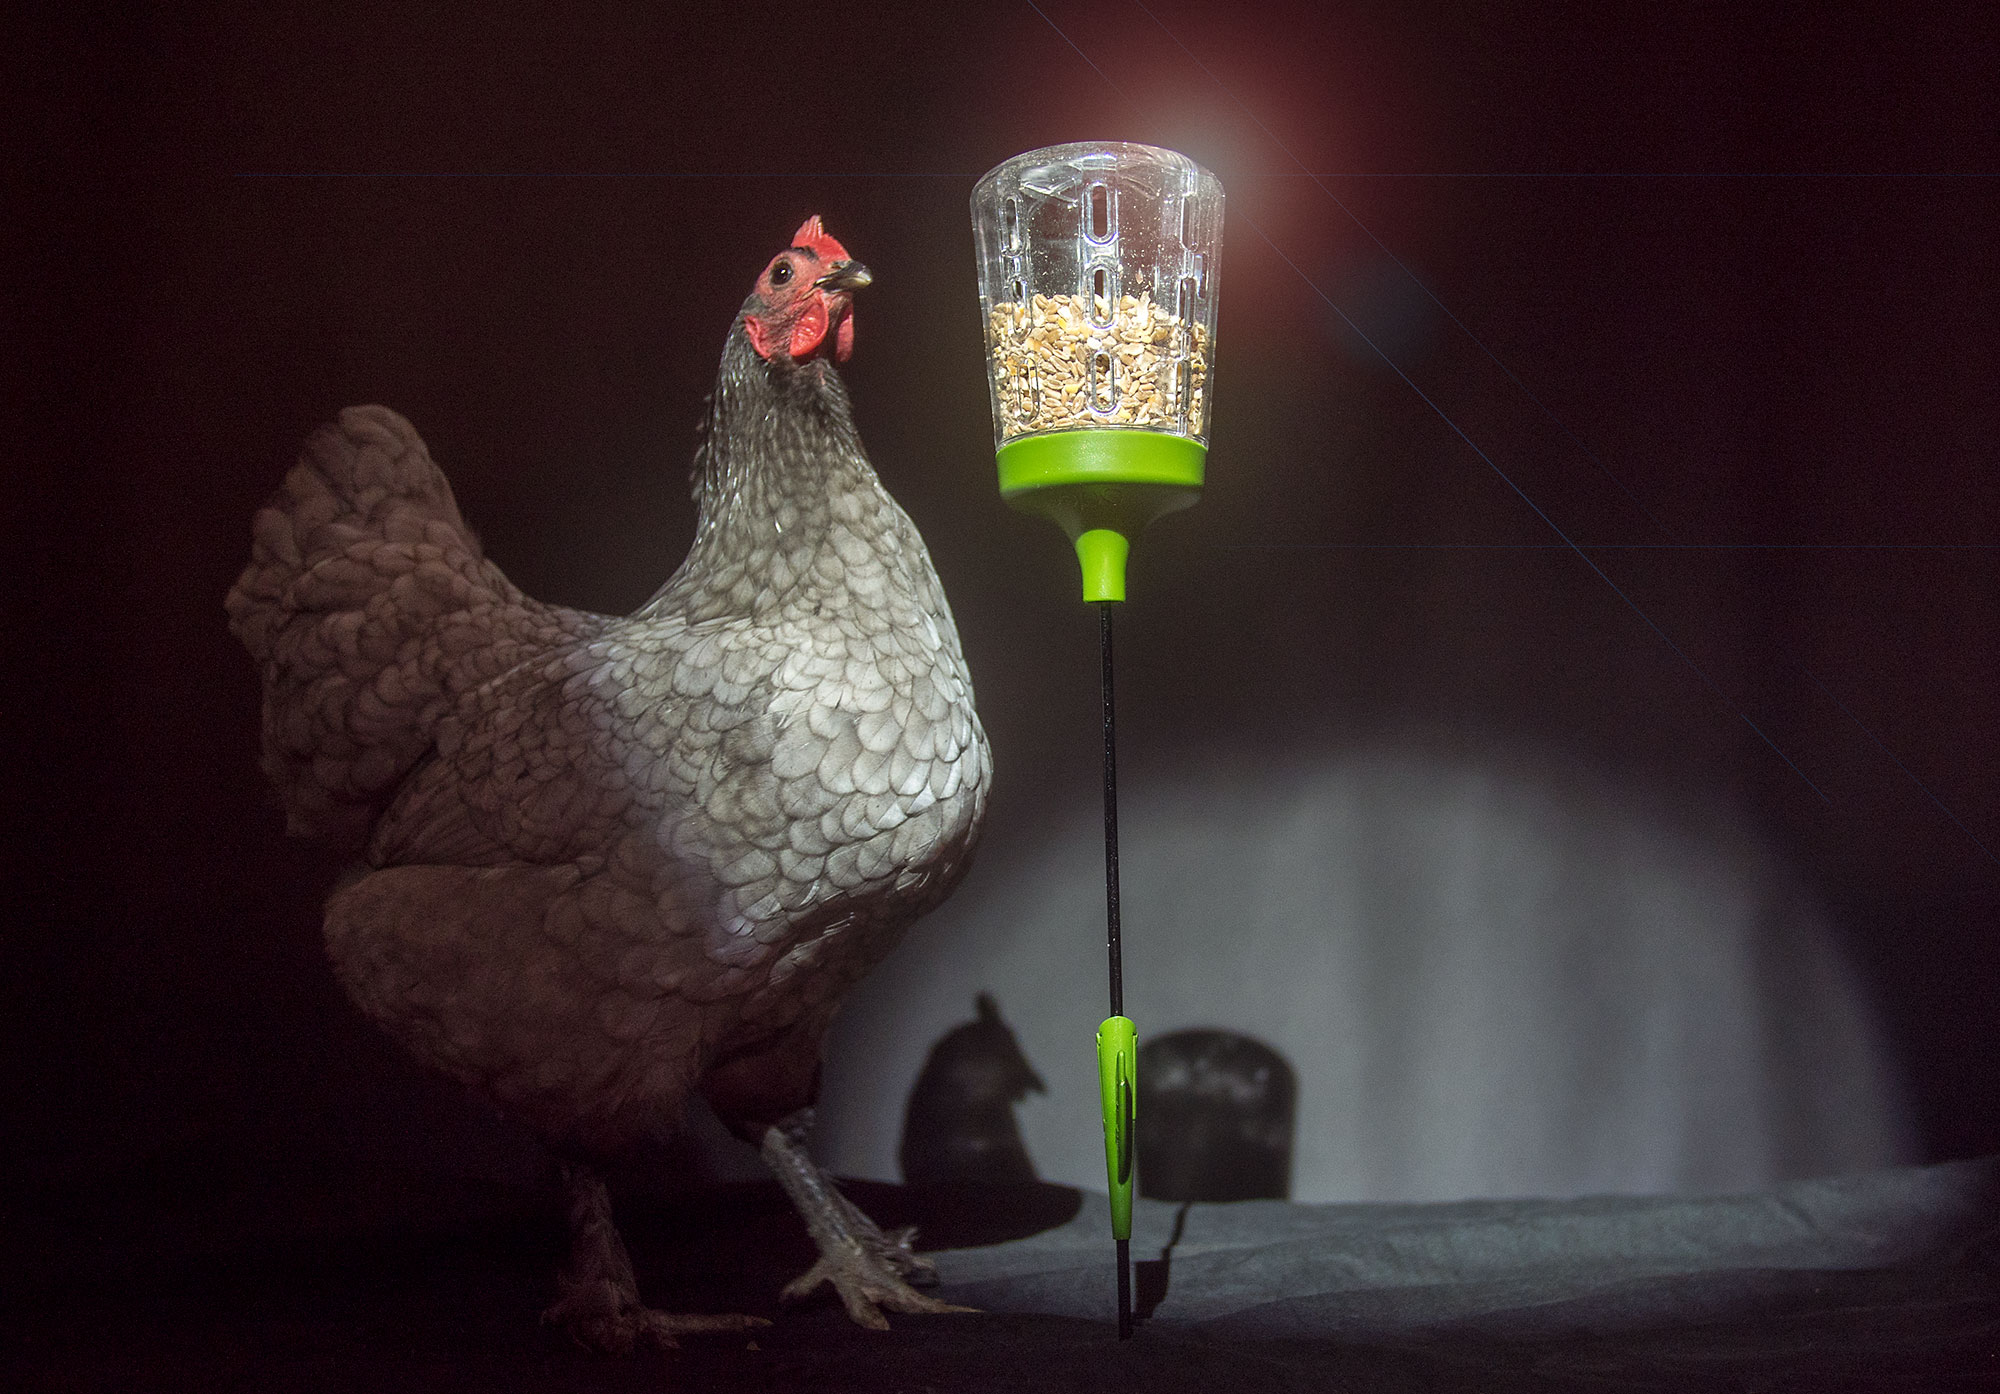 Chicken using an Elvis Peck Toy treat dispenser